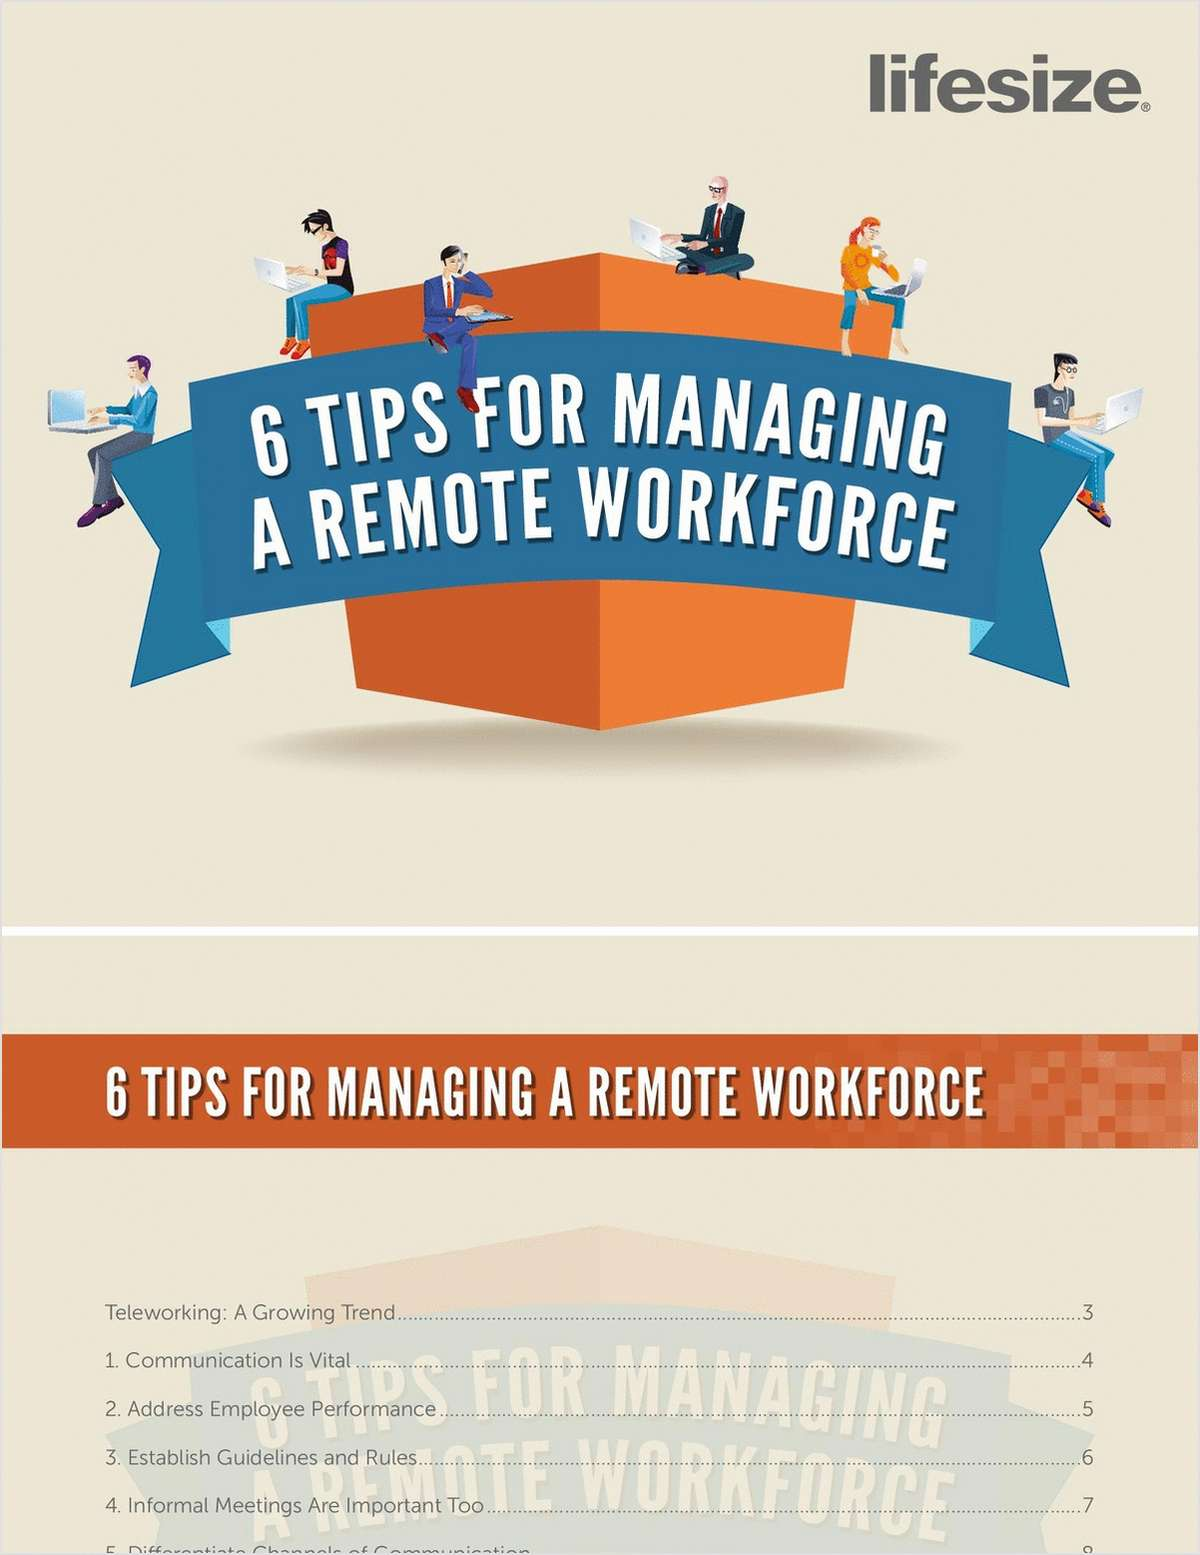 6 Tips for Managing a Remote Workforce Guide